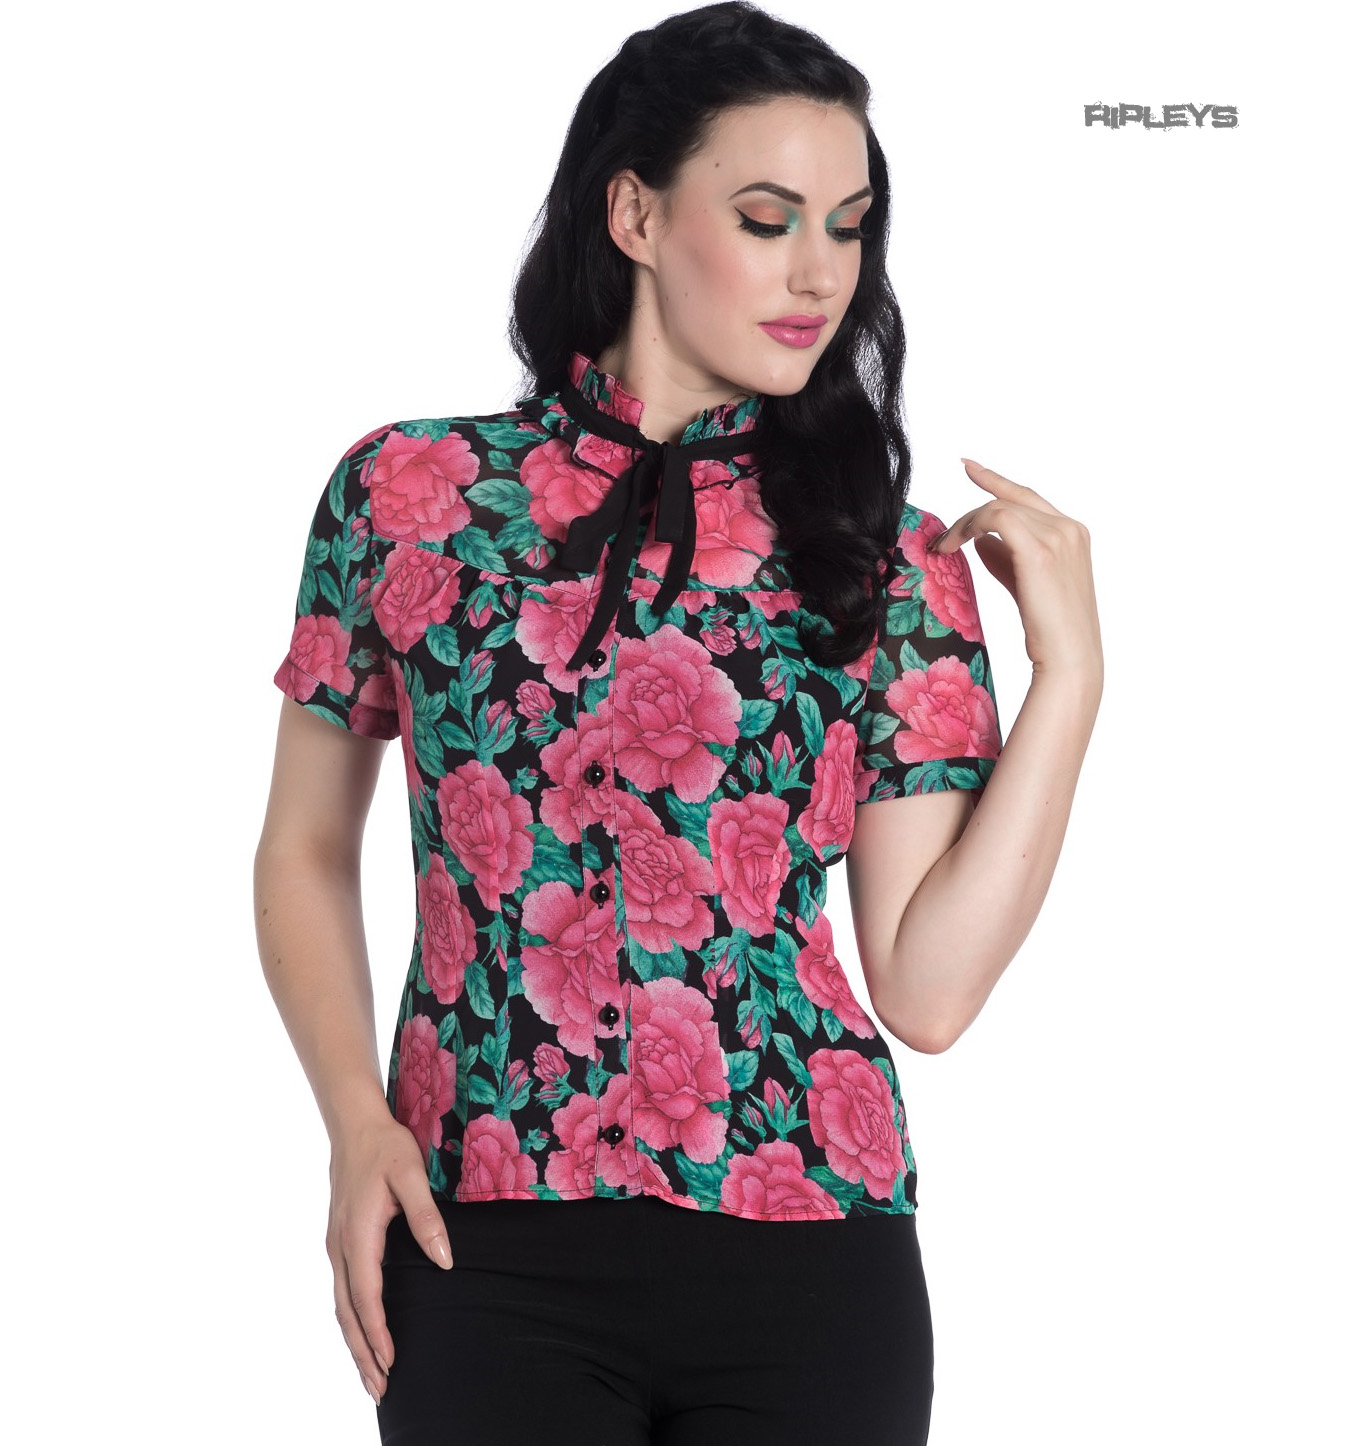 Hell-Bunny-Shirt-Top-Flowers-Roses-EDEN-ROSE-Black-Pink-Blouse-All-Sizes thumbnail 14